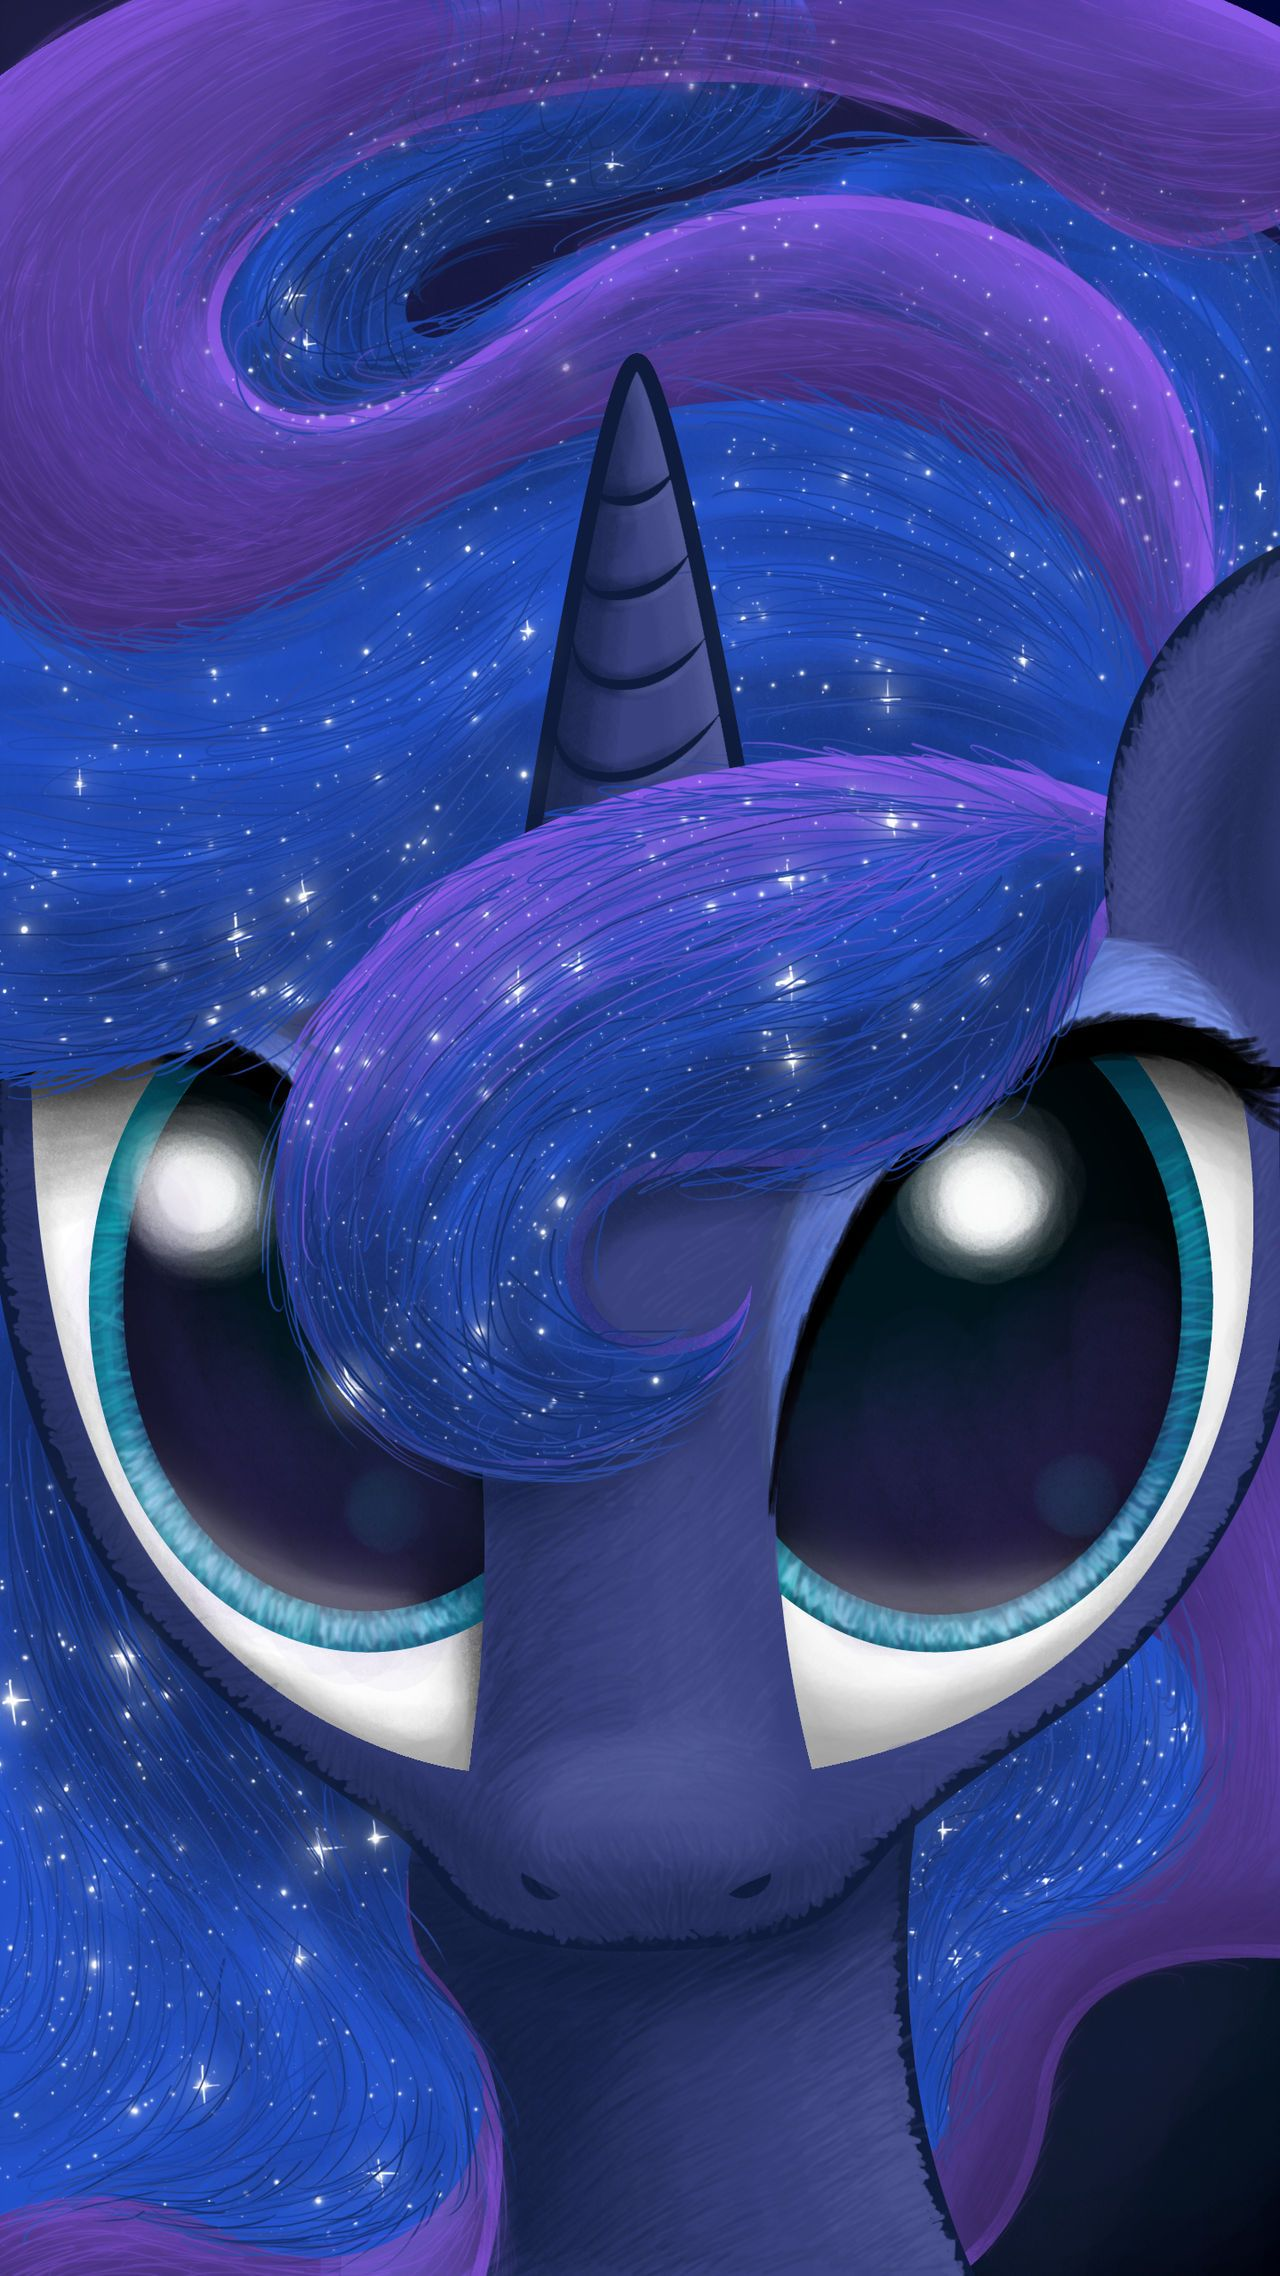 Luna Lockscreen Wallpaper By Nimaru My Little Pony Wallpaper My Little Pony Drawing My Little Pony Poster